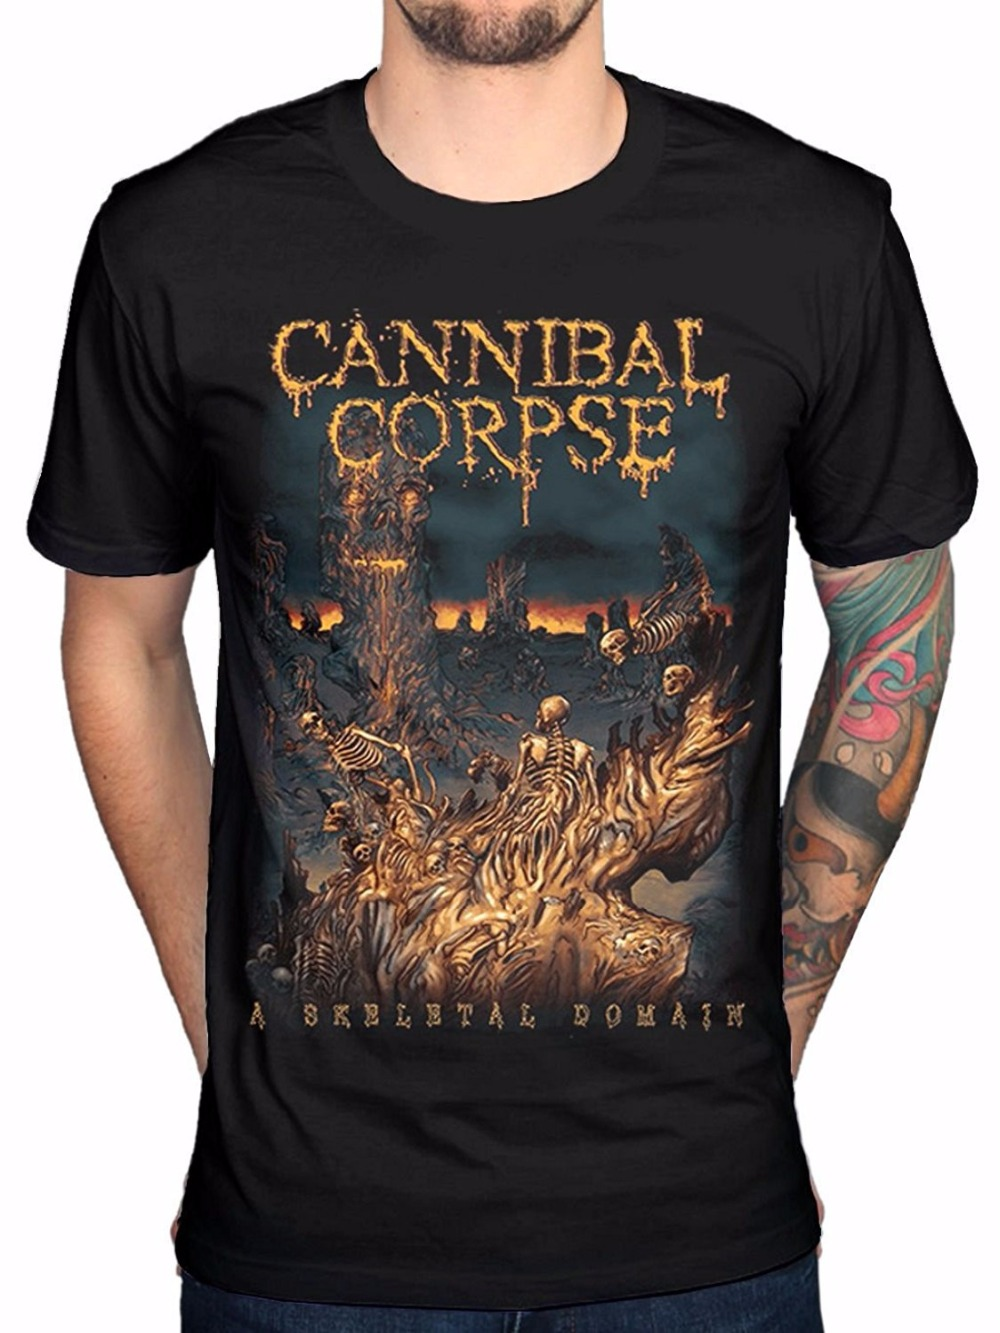 Company T Shirts Mens Cannibal Corpse A Skeletal Domain Mens Black Cotton Top T-Shirt Tee O-Neck Short Sleeve Fashion T Shirts